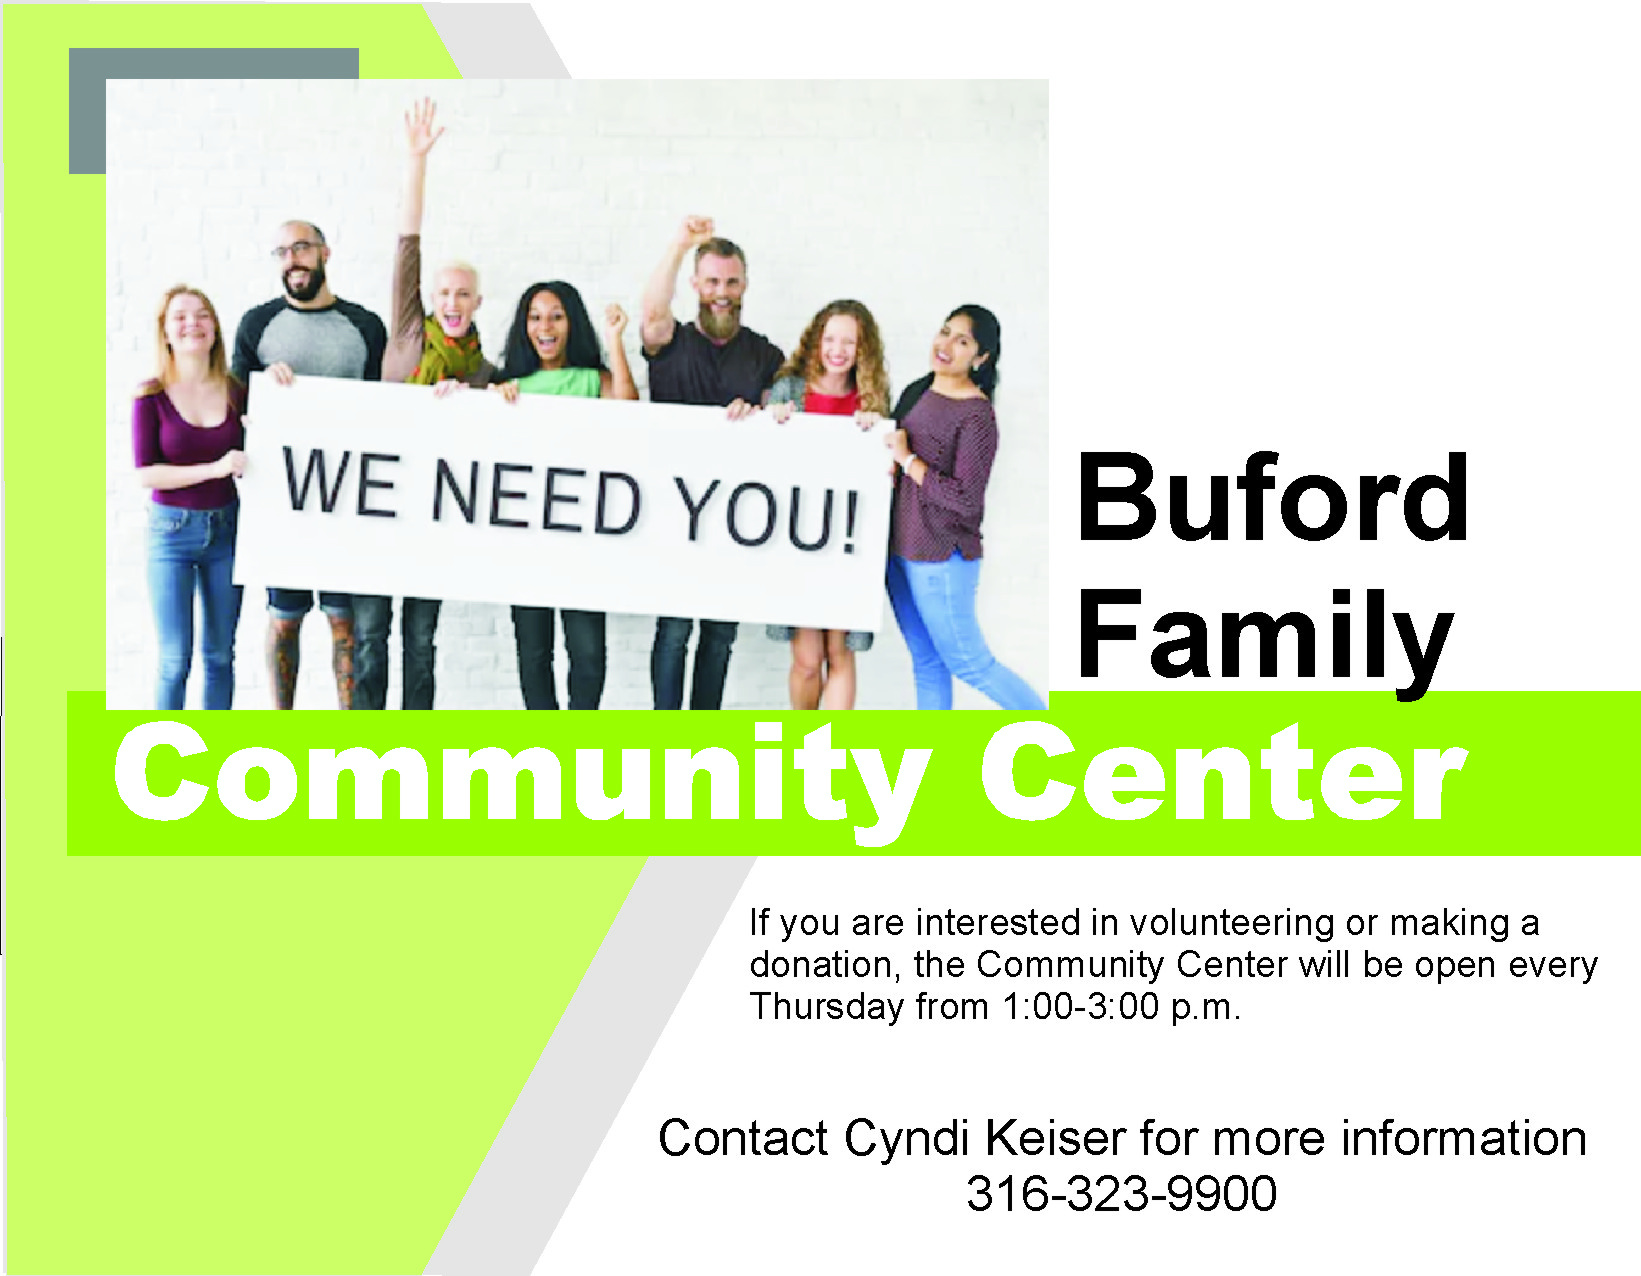 Buford Community Center